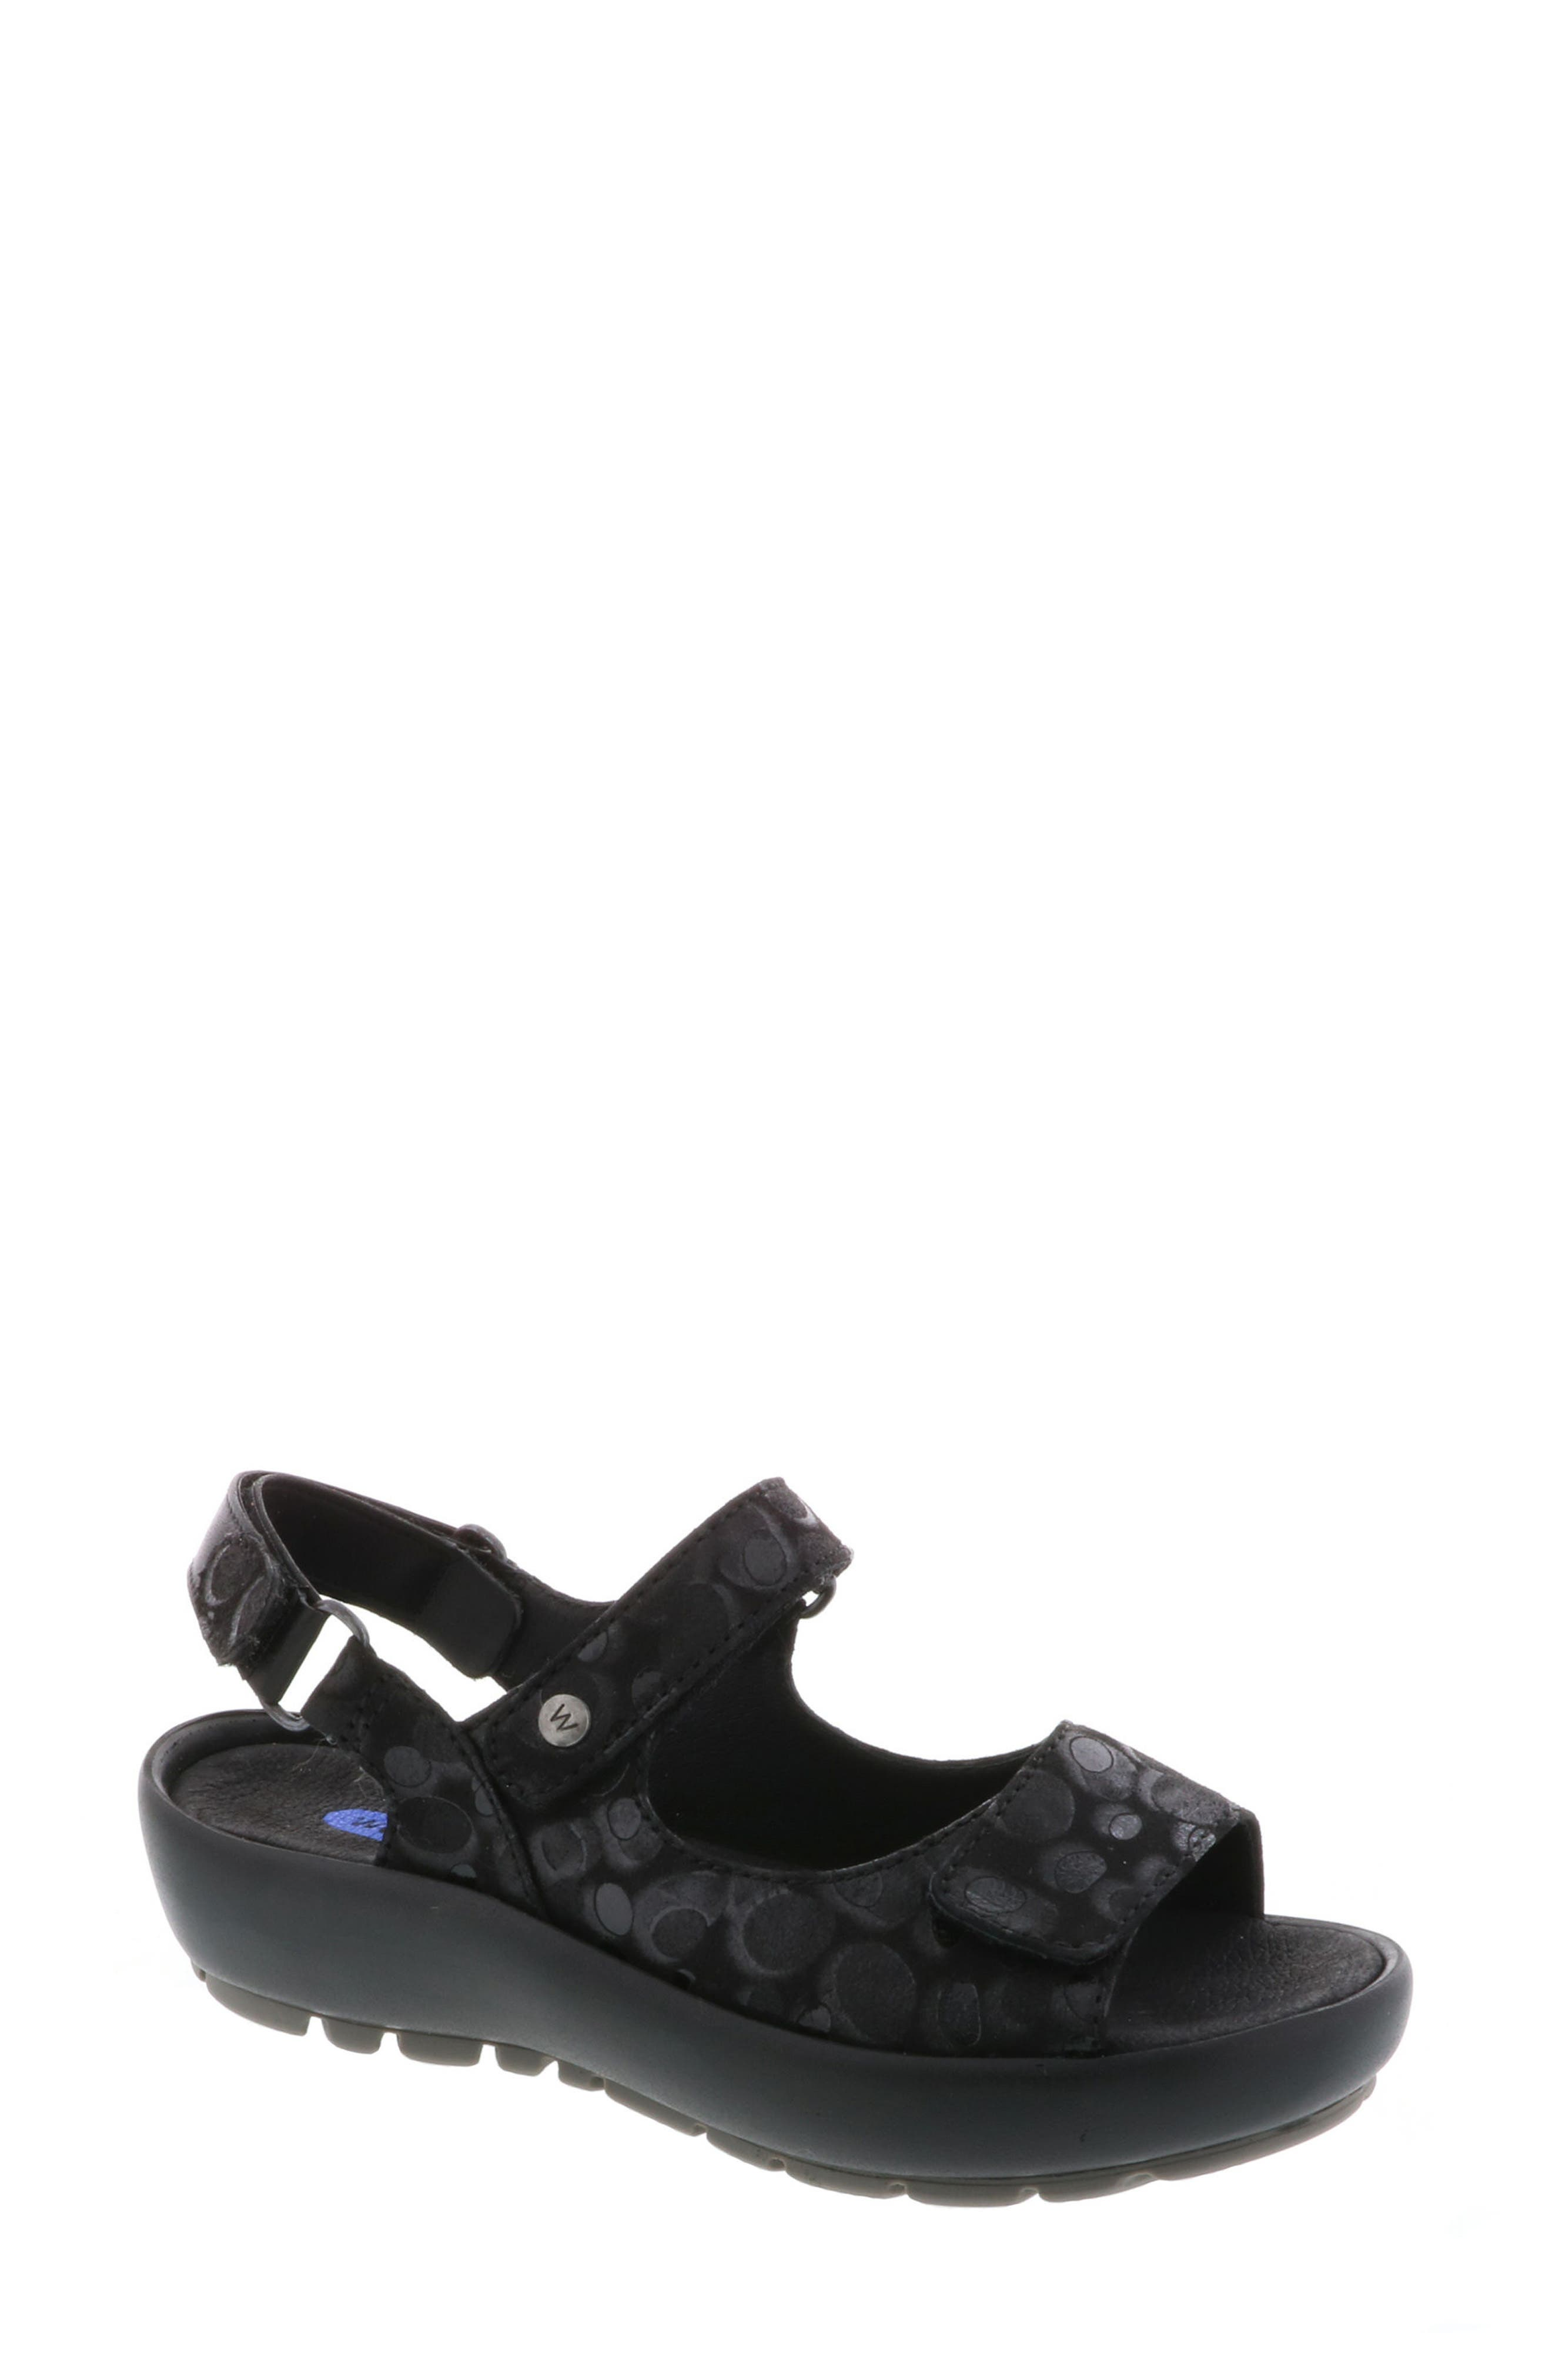 Rio Sandal,                         Main,                         color, BLACK CIRCLE PRINT